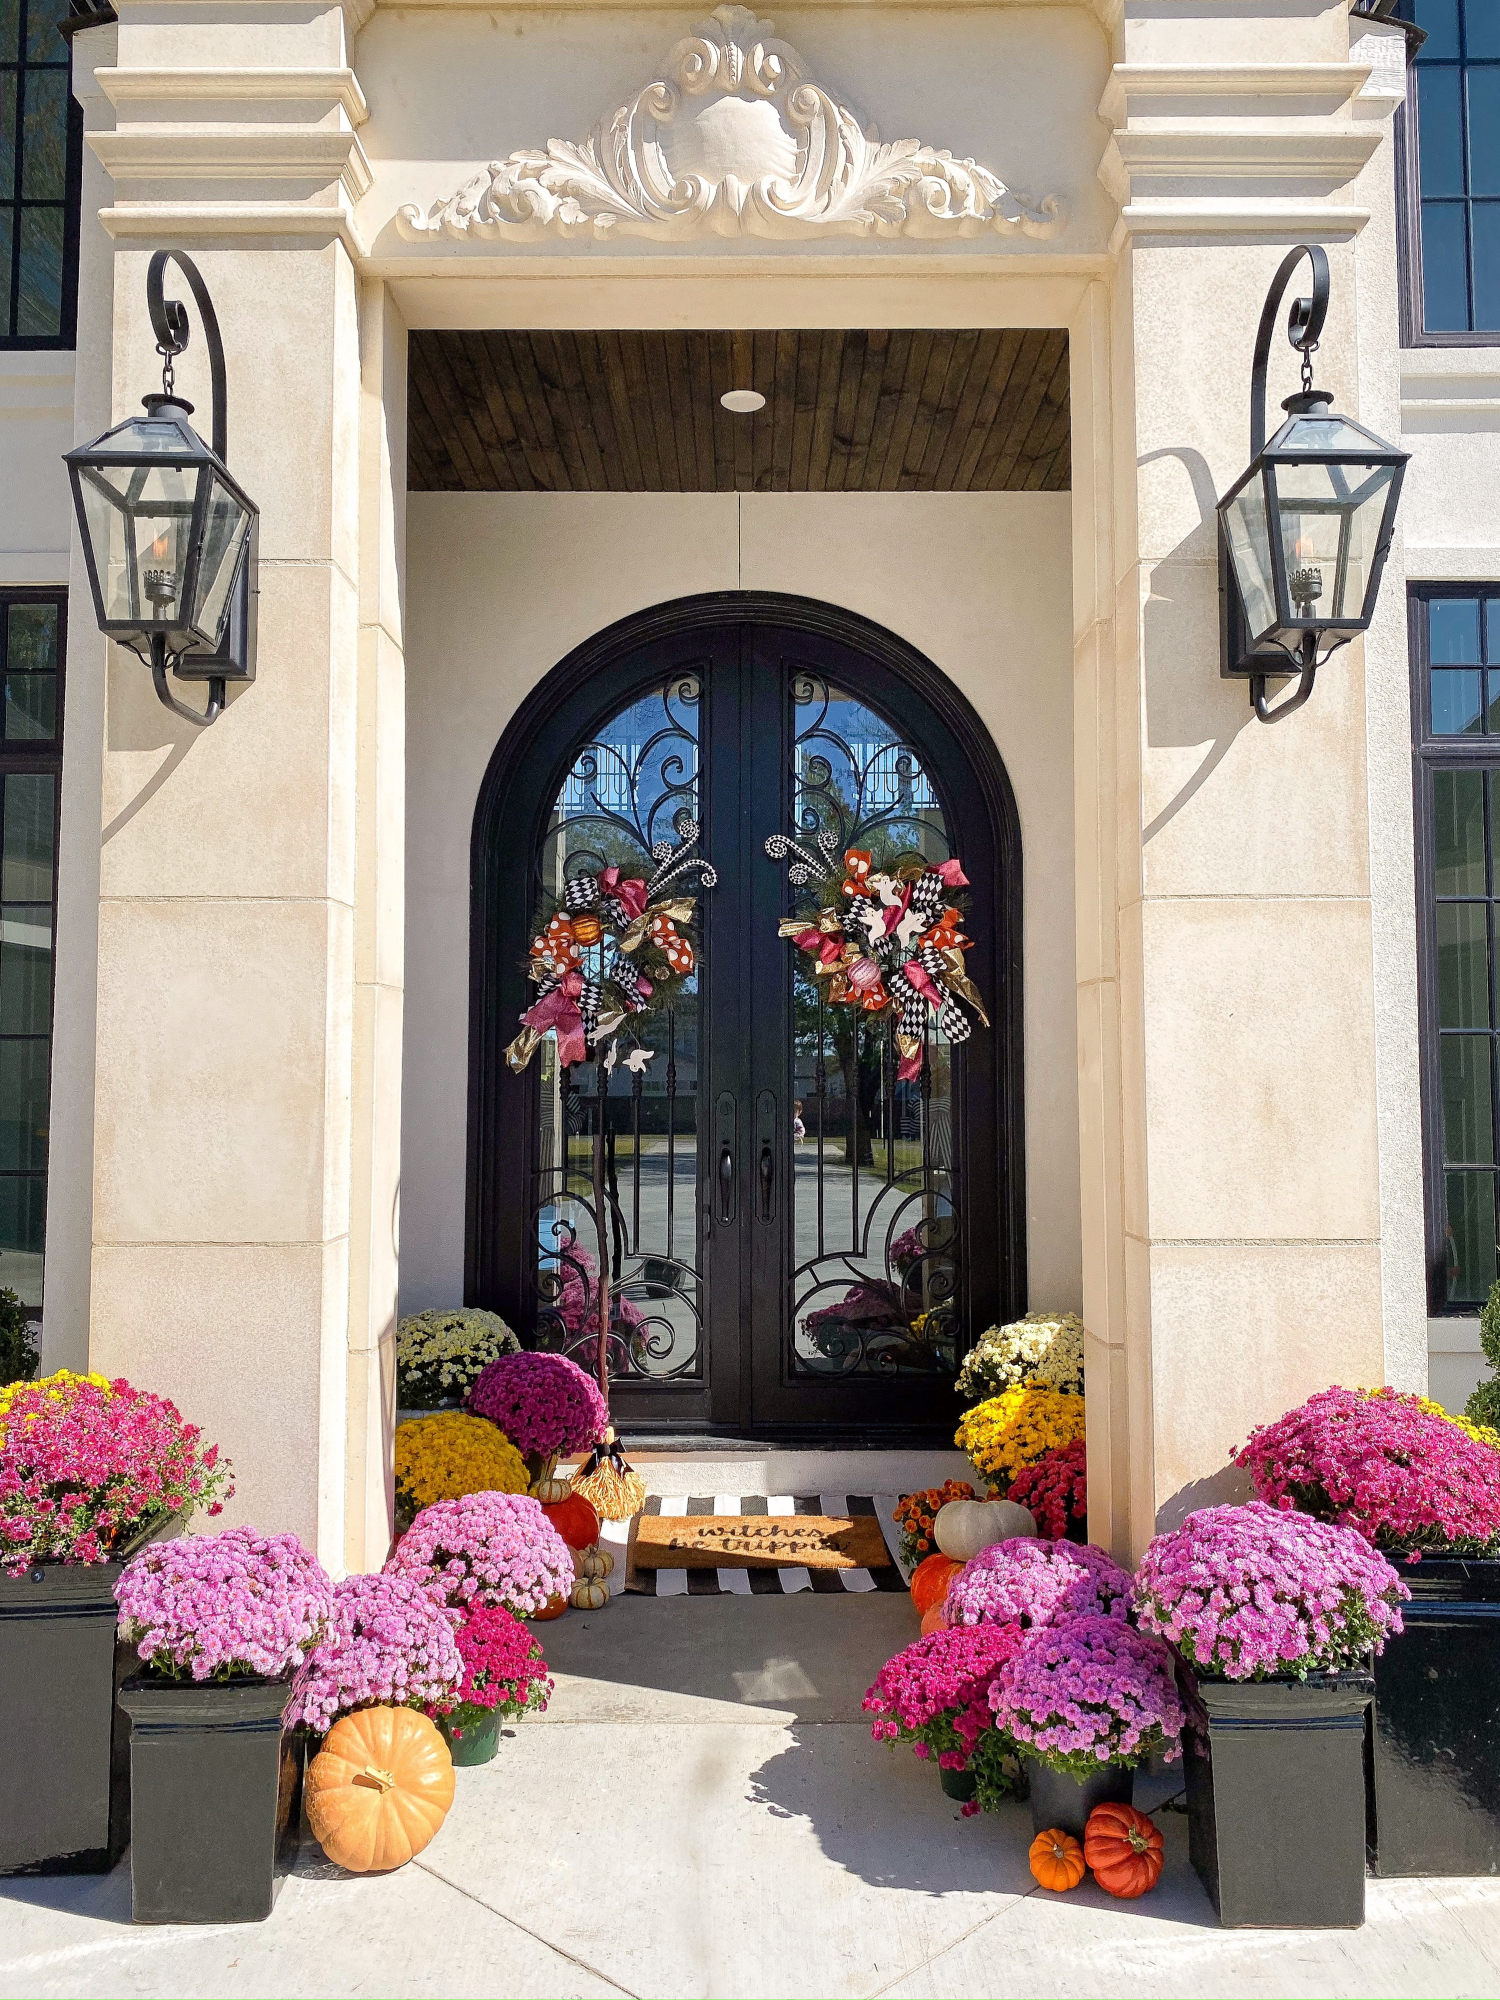 fall front door decor mums pinterest, emily gemma, shop hello holidays | A YEAR IN REVIEW : MASSIVE 2019 INSTAGRAM RECAP by popular Oklahoma life and style blog, The Sweetest Thing: image of a front porch decorated with various colored potted mums and pumpkins.